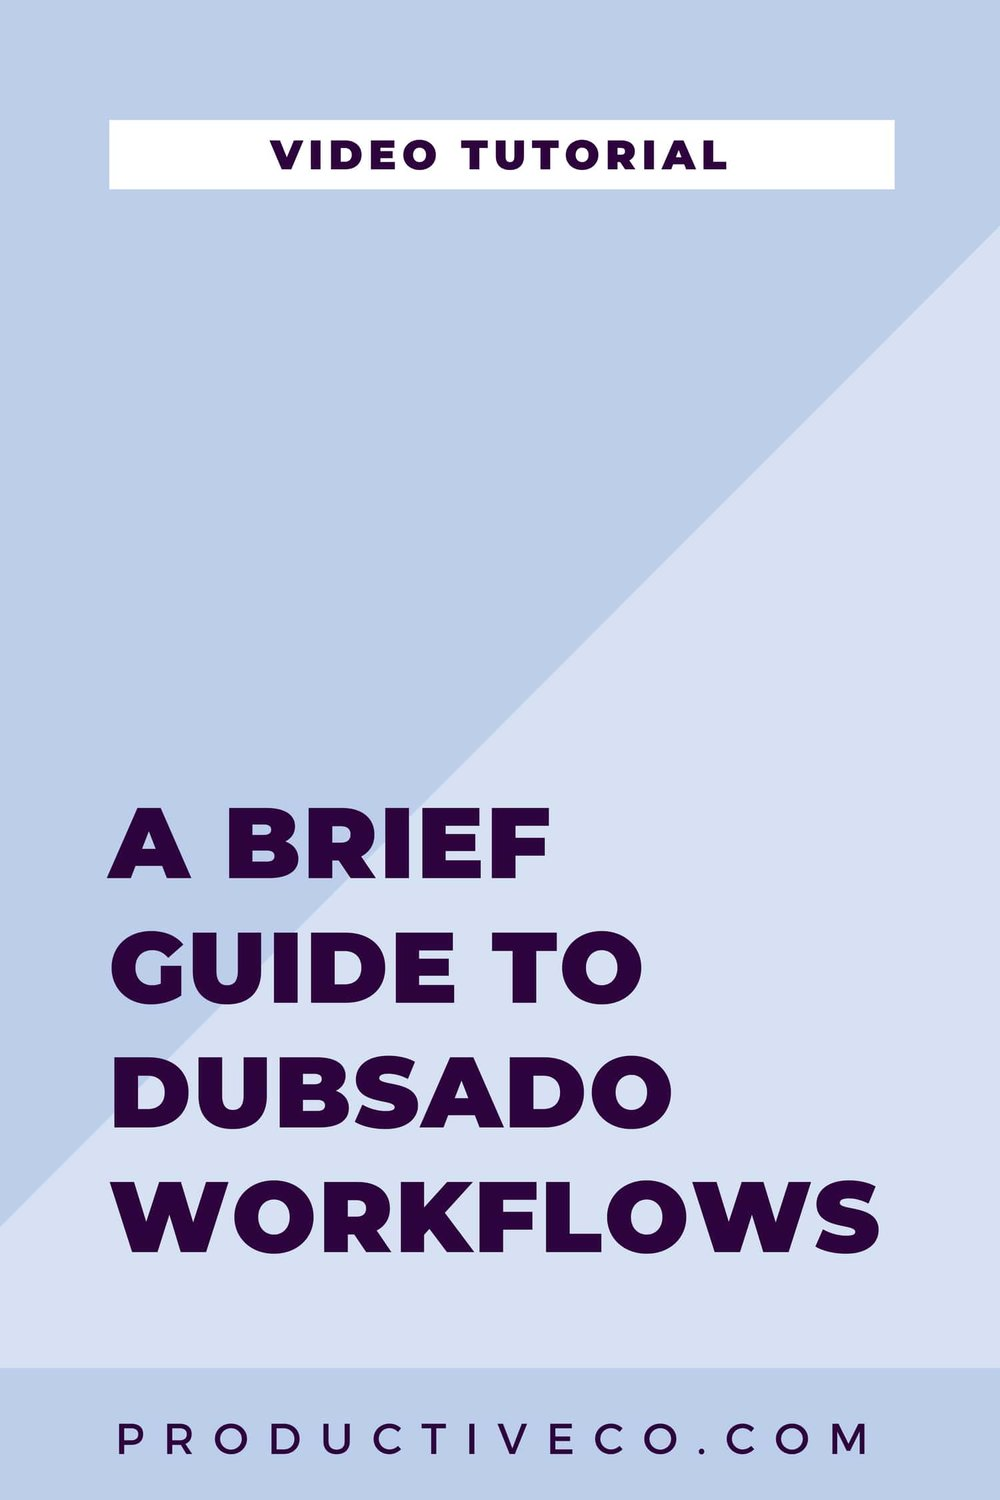 How to build workflows in Dubsado inside this blog post and video. Workflows are where you'll find most automation features in Dubsado.